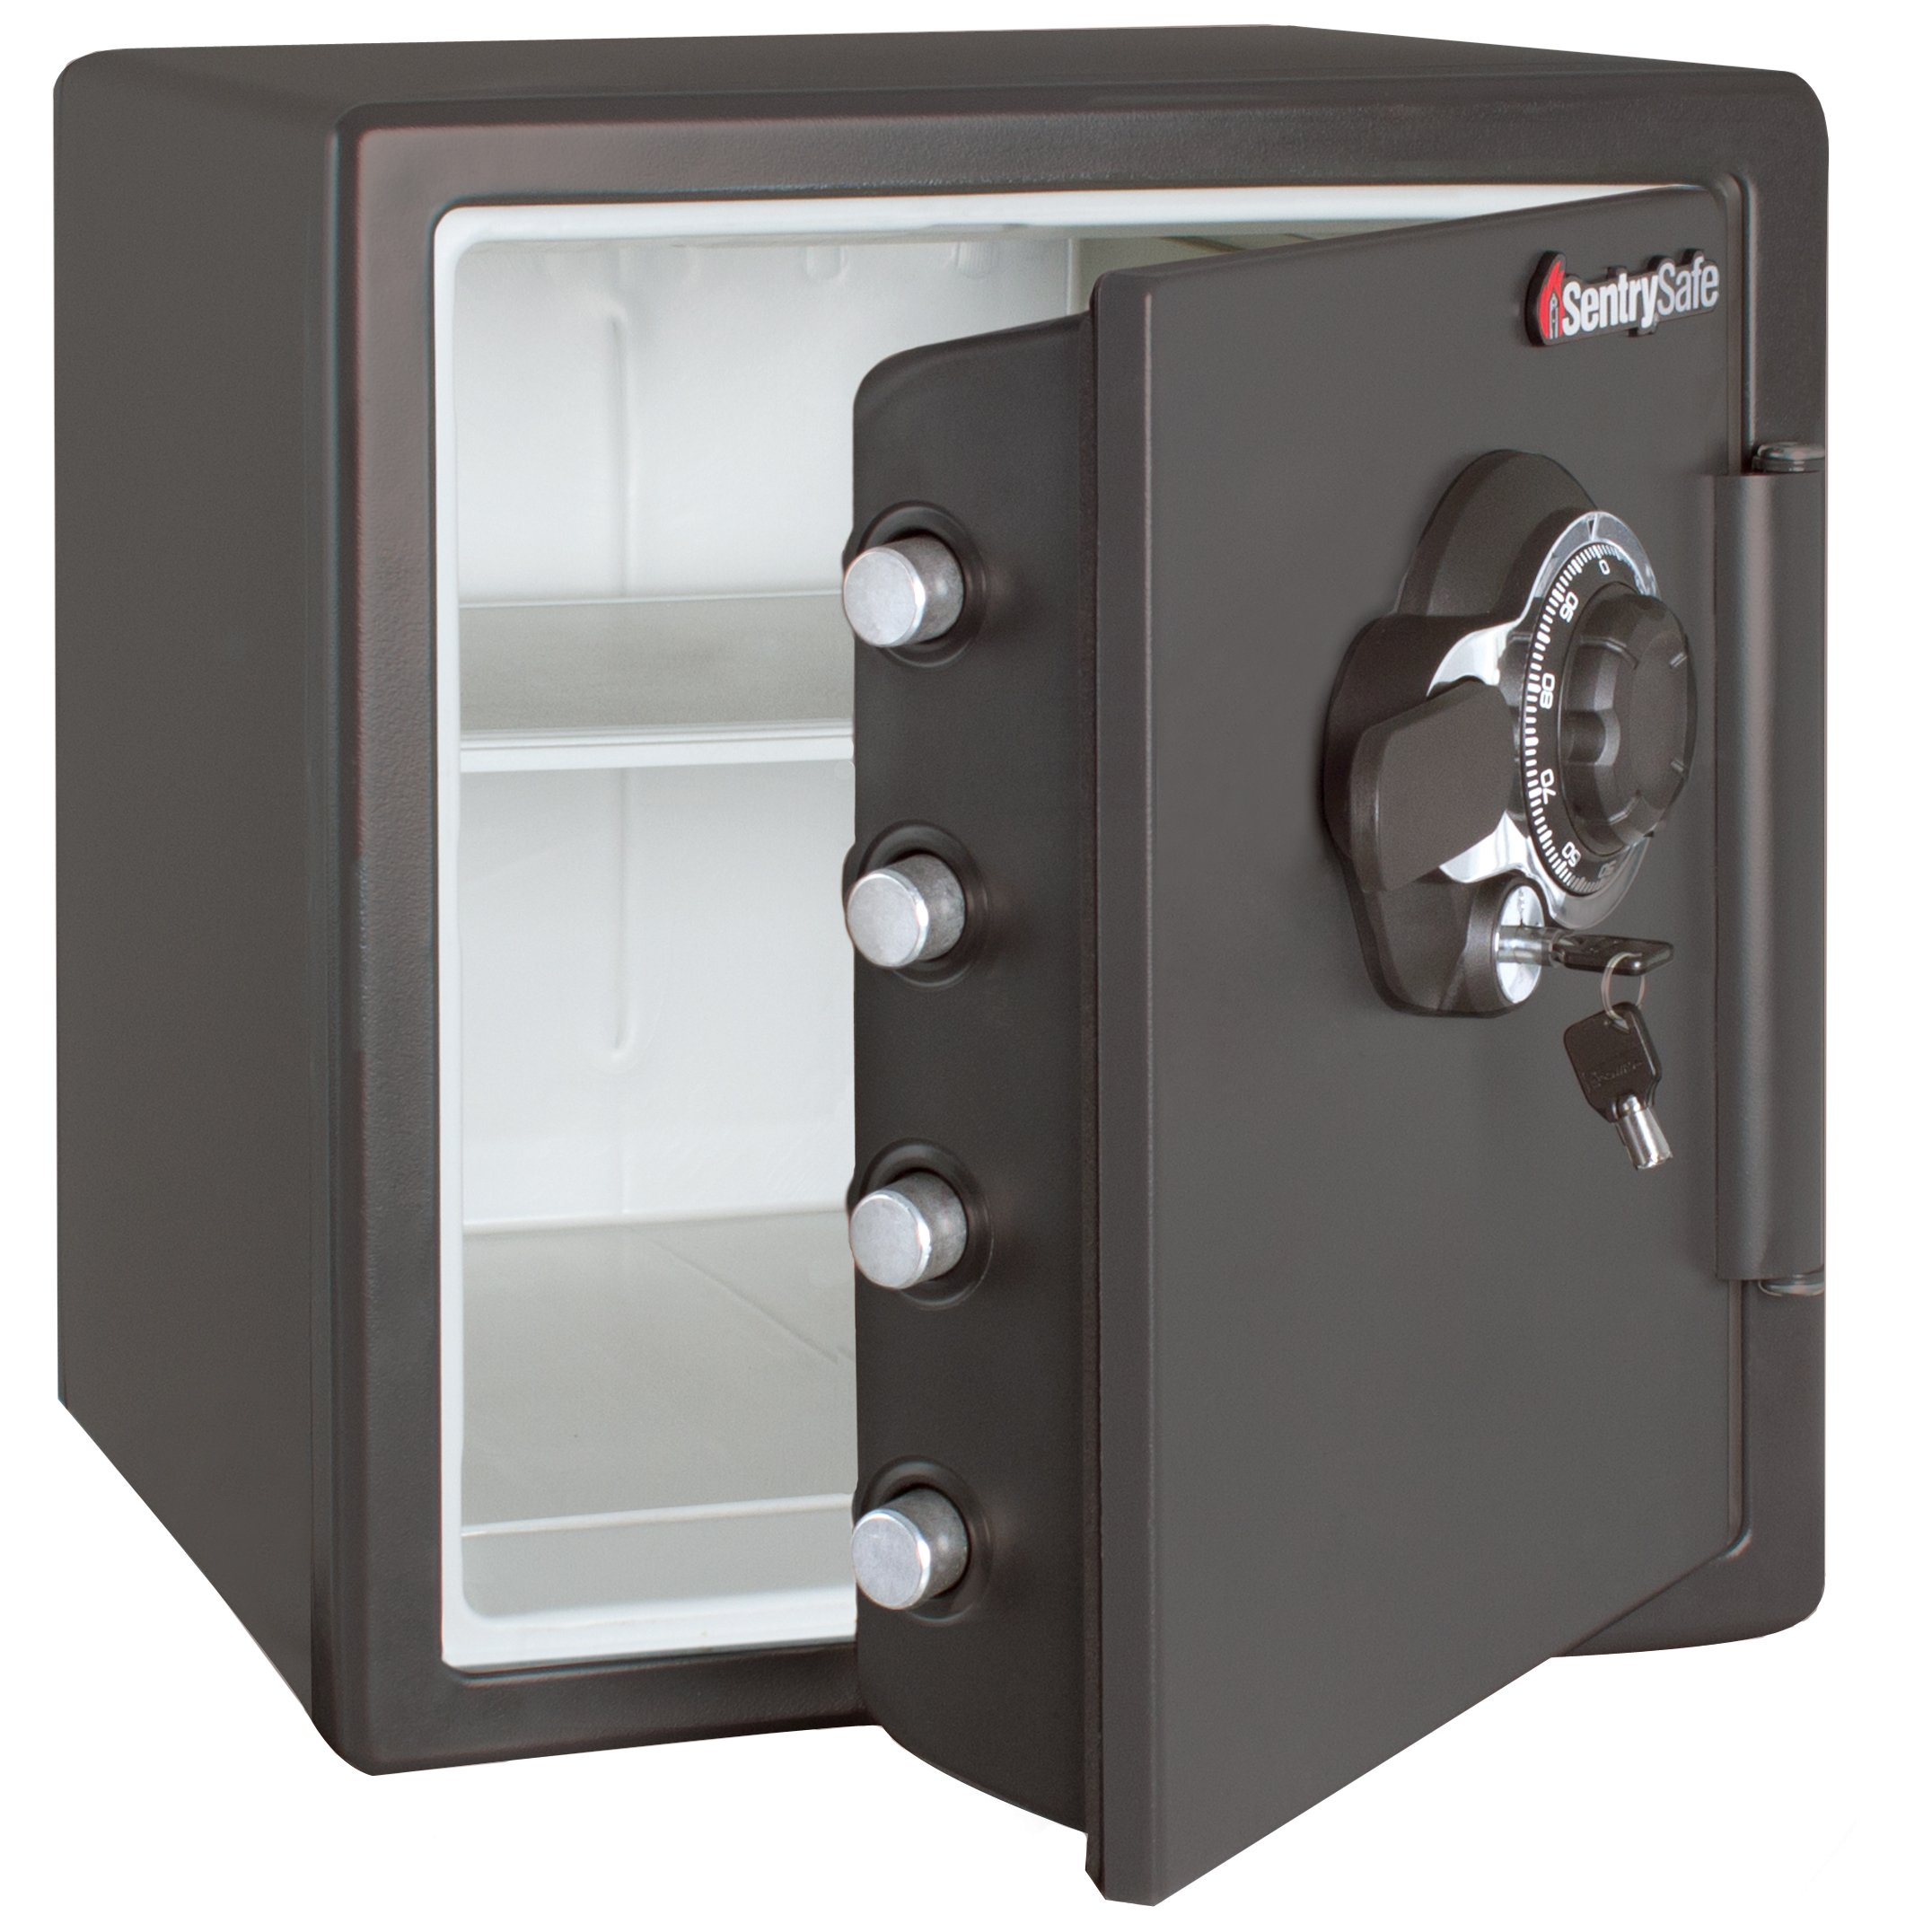 SentrySafe Fire and Water Safe, Extra Large Combination Safe with Dual Key Lock, 1.23 Cubic Feet, SFW123DSB by SentrySafe